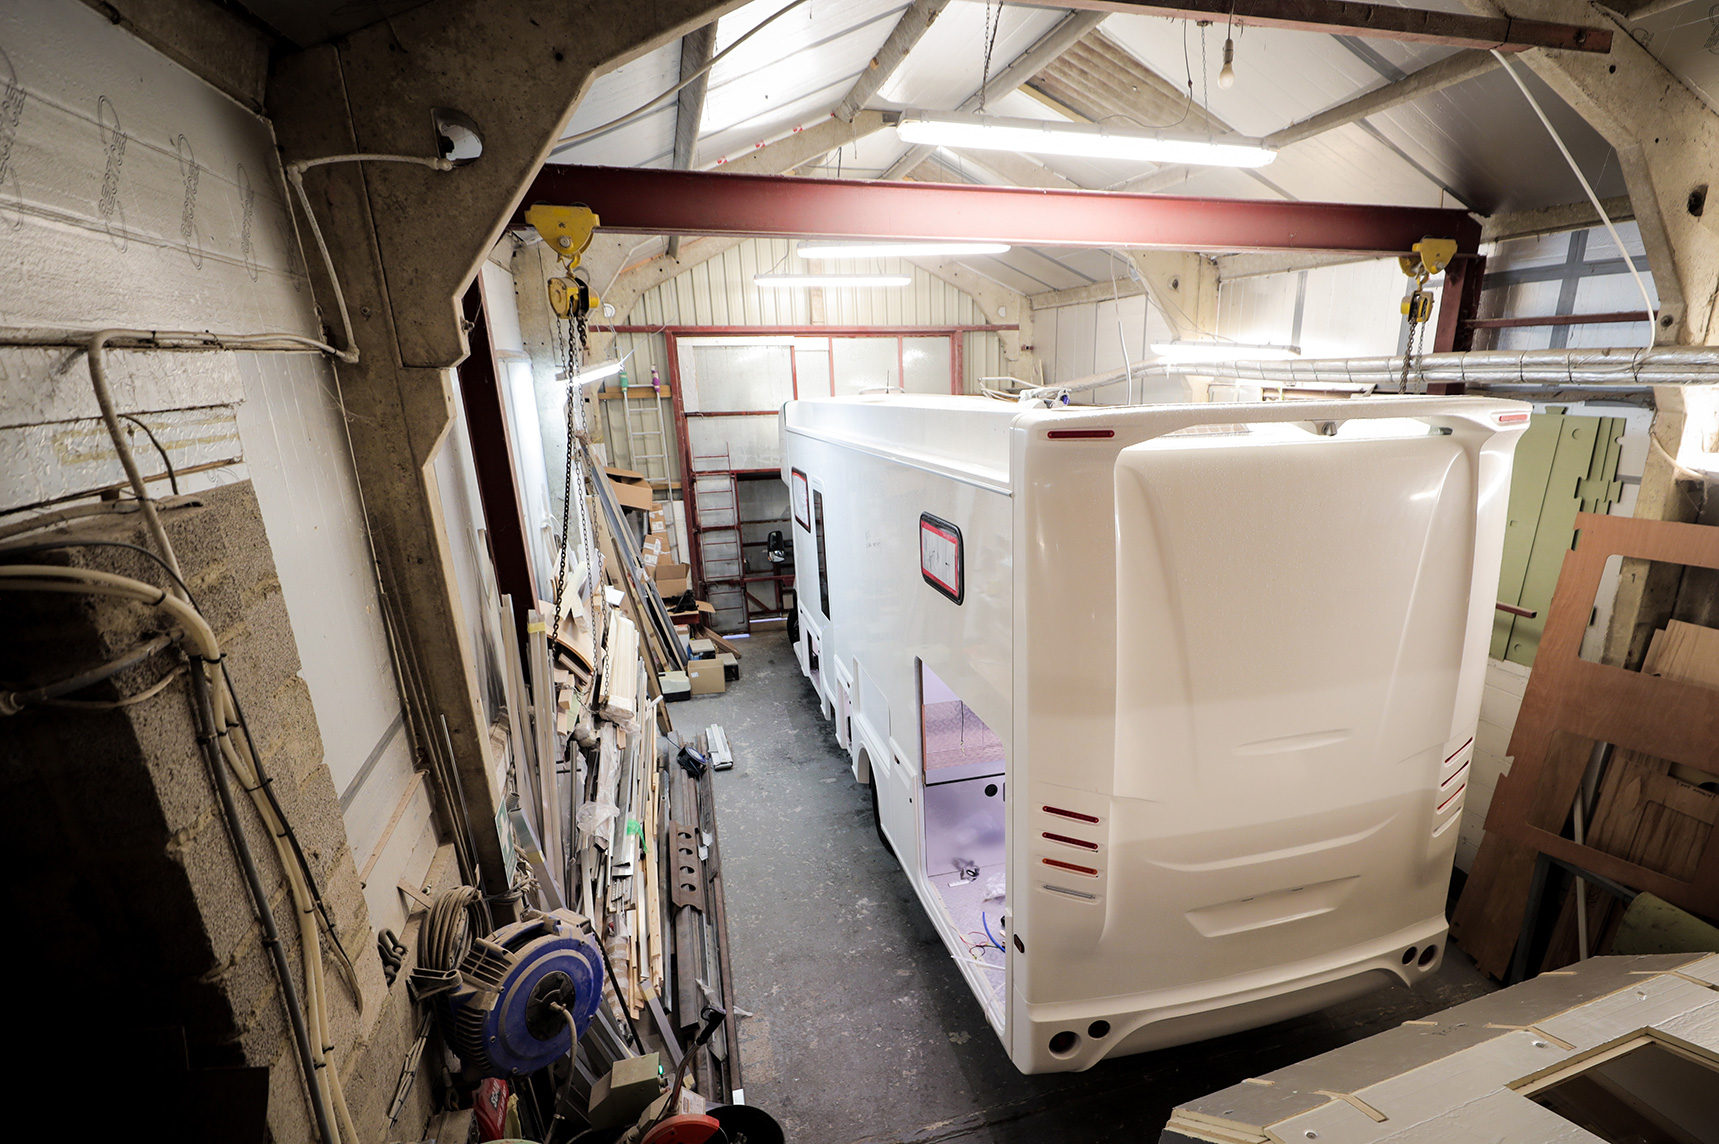 RC Motorhome mid-build in the workshop